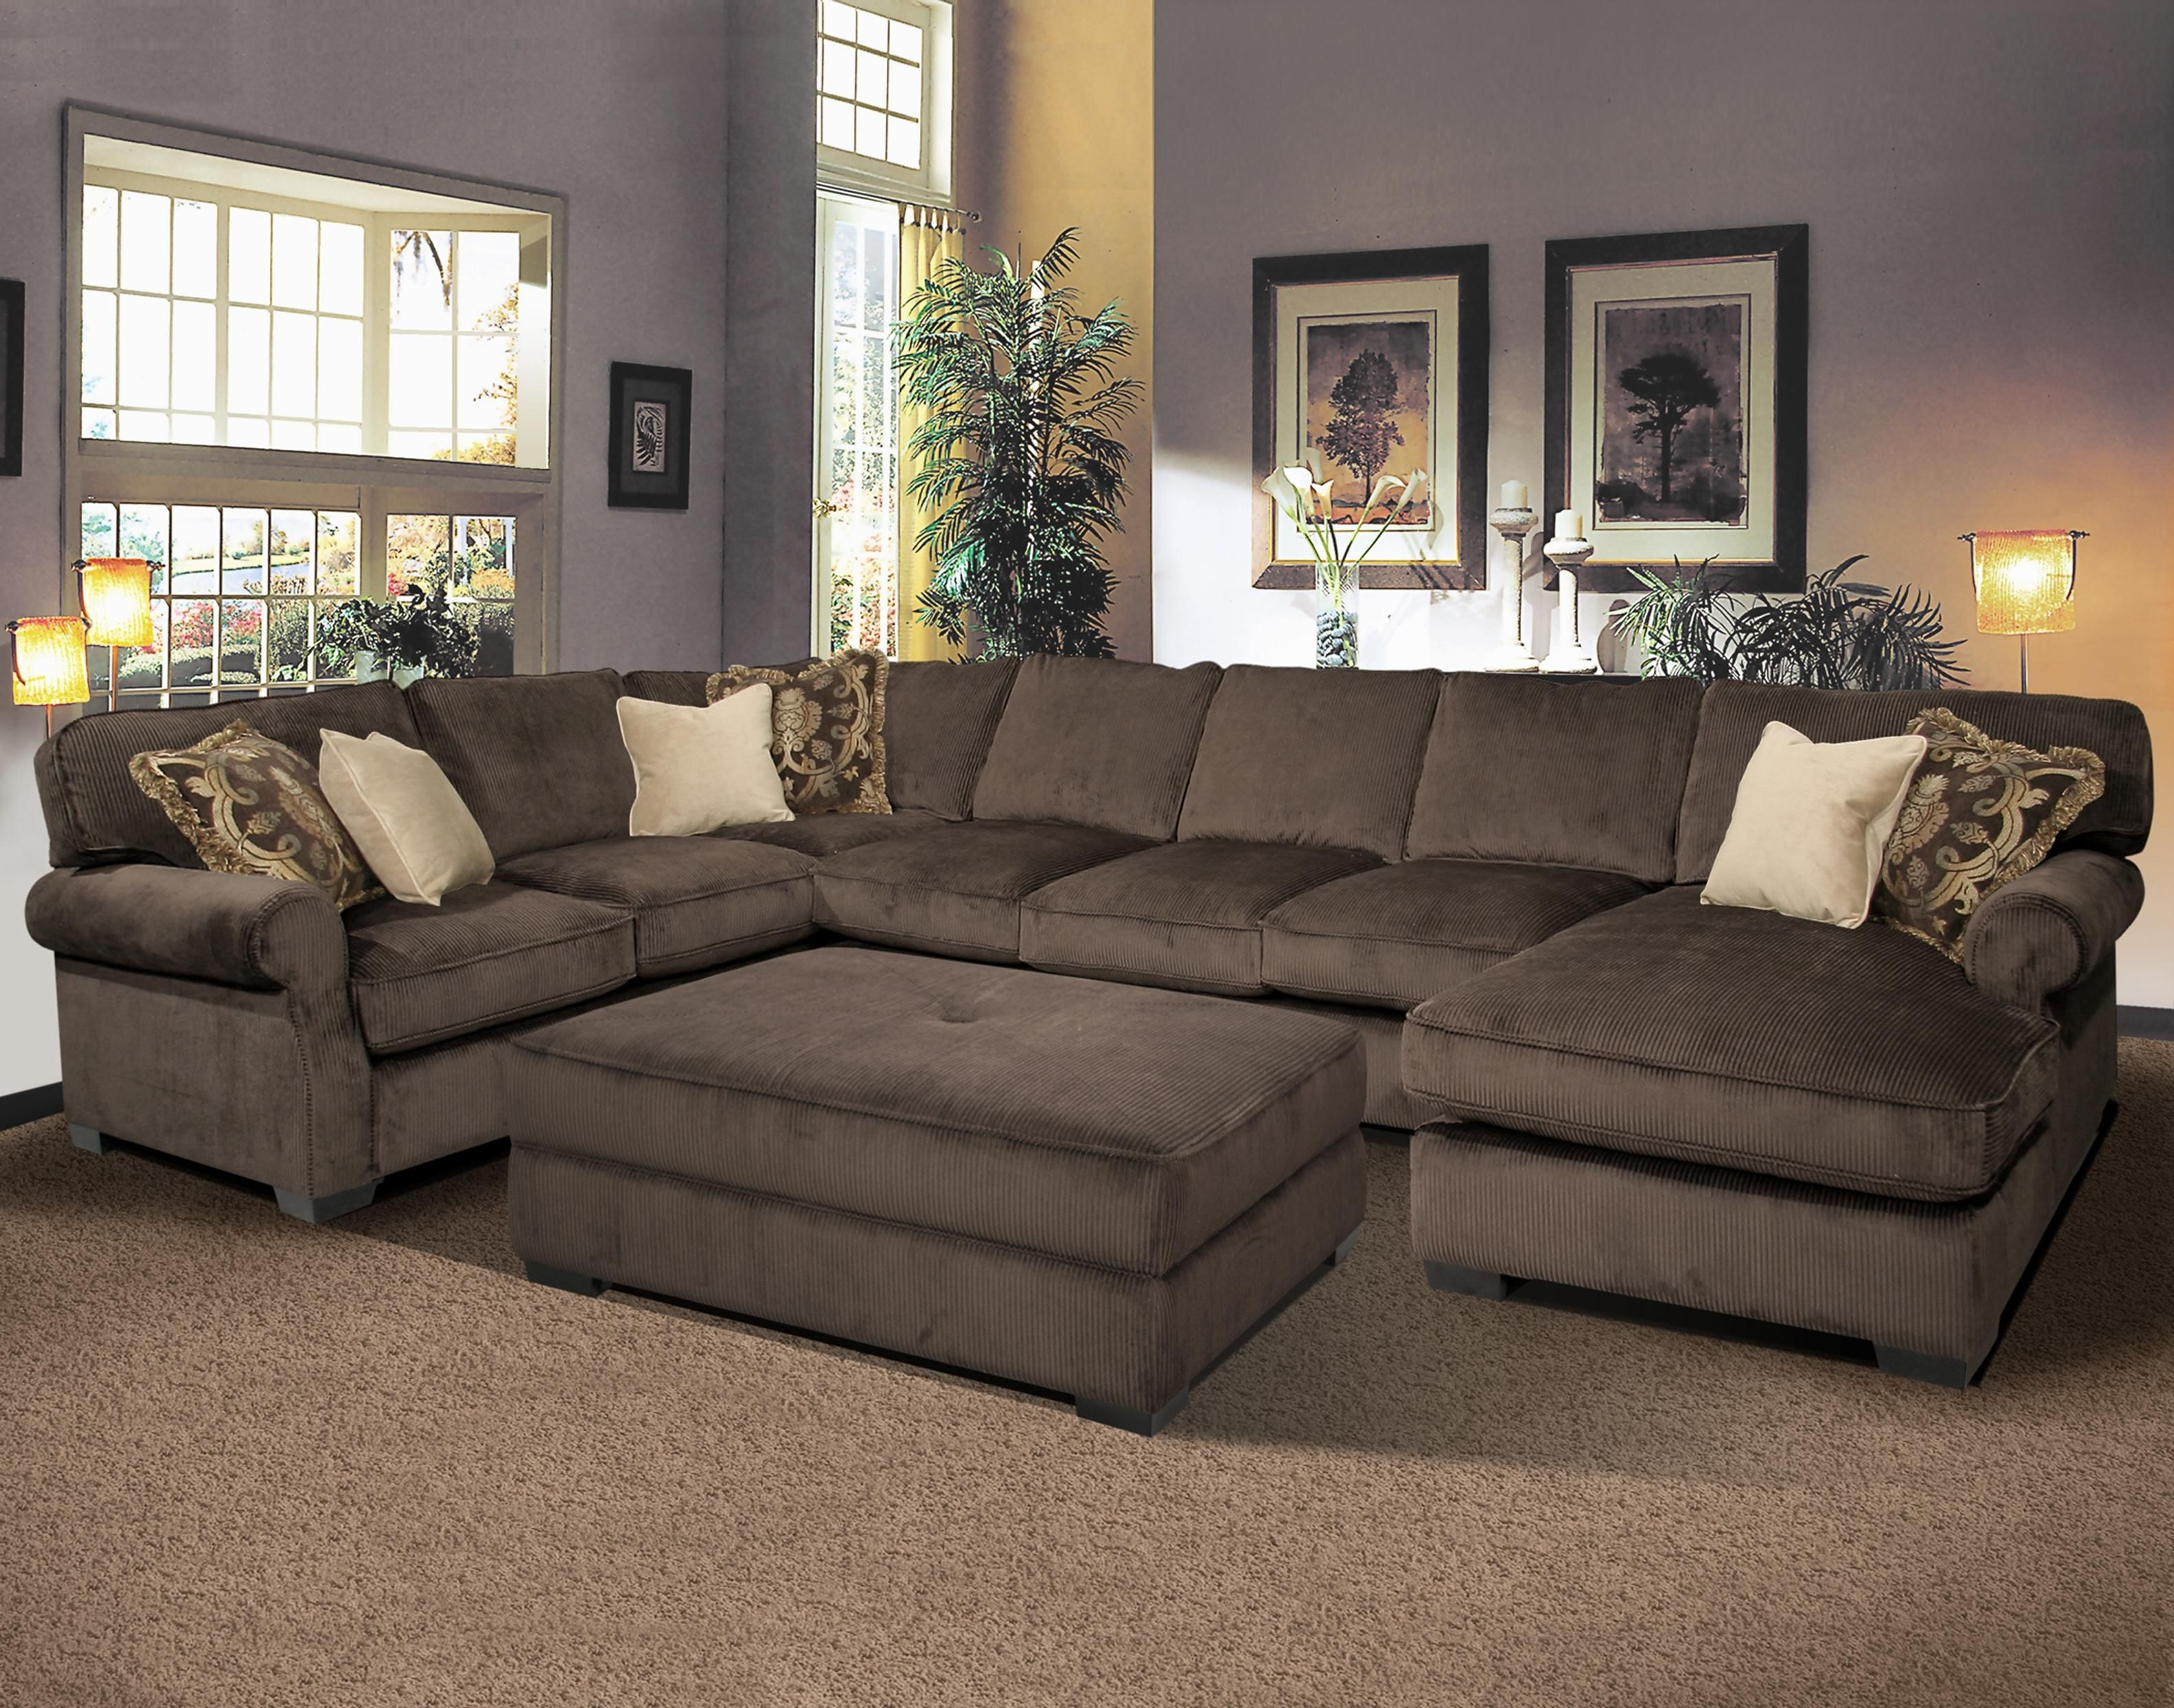 Popular Couches With Large Ottoman With Sofa : Large Sectional Sofa With Ottoman Leather Sectional Living (View 12 of 15)